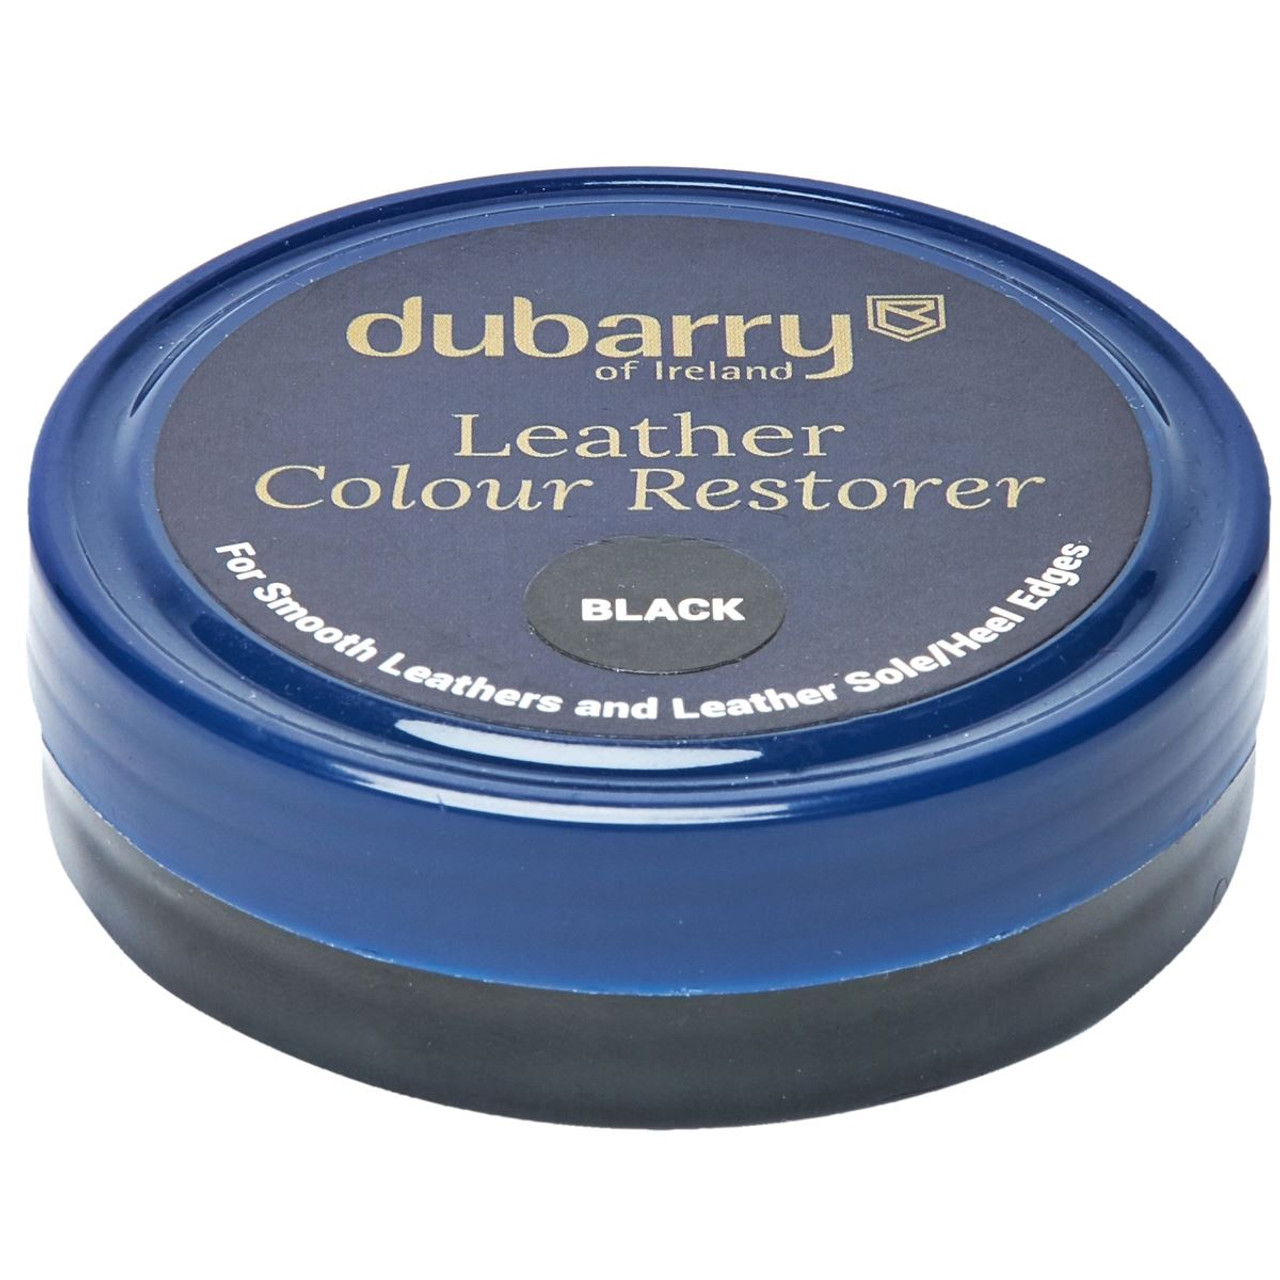 Dubarry Leather Colour Restorer Cream Black